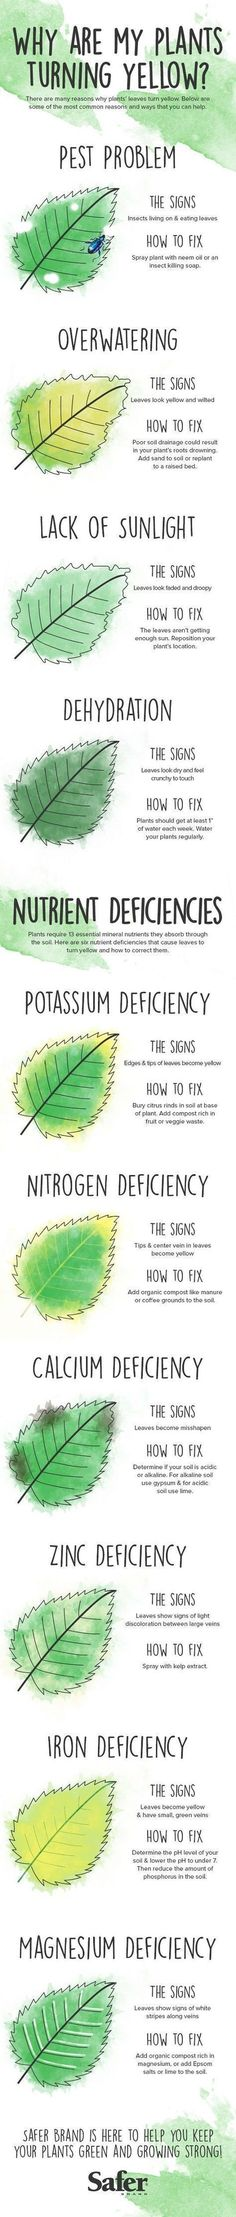 yellowing leavings, dying plants, plants turning yellow, gardening, green thumb, organic gardening, gardening tips, house plant gardening, house plants, plant growing tips, infographics, reader submission, safer brand #hydroponicsinfographic #hydroponicshouseplants #greenhouse